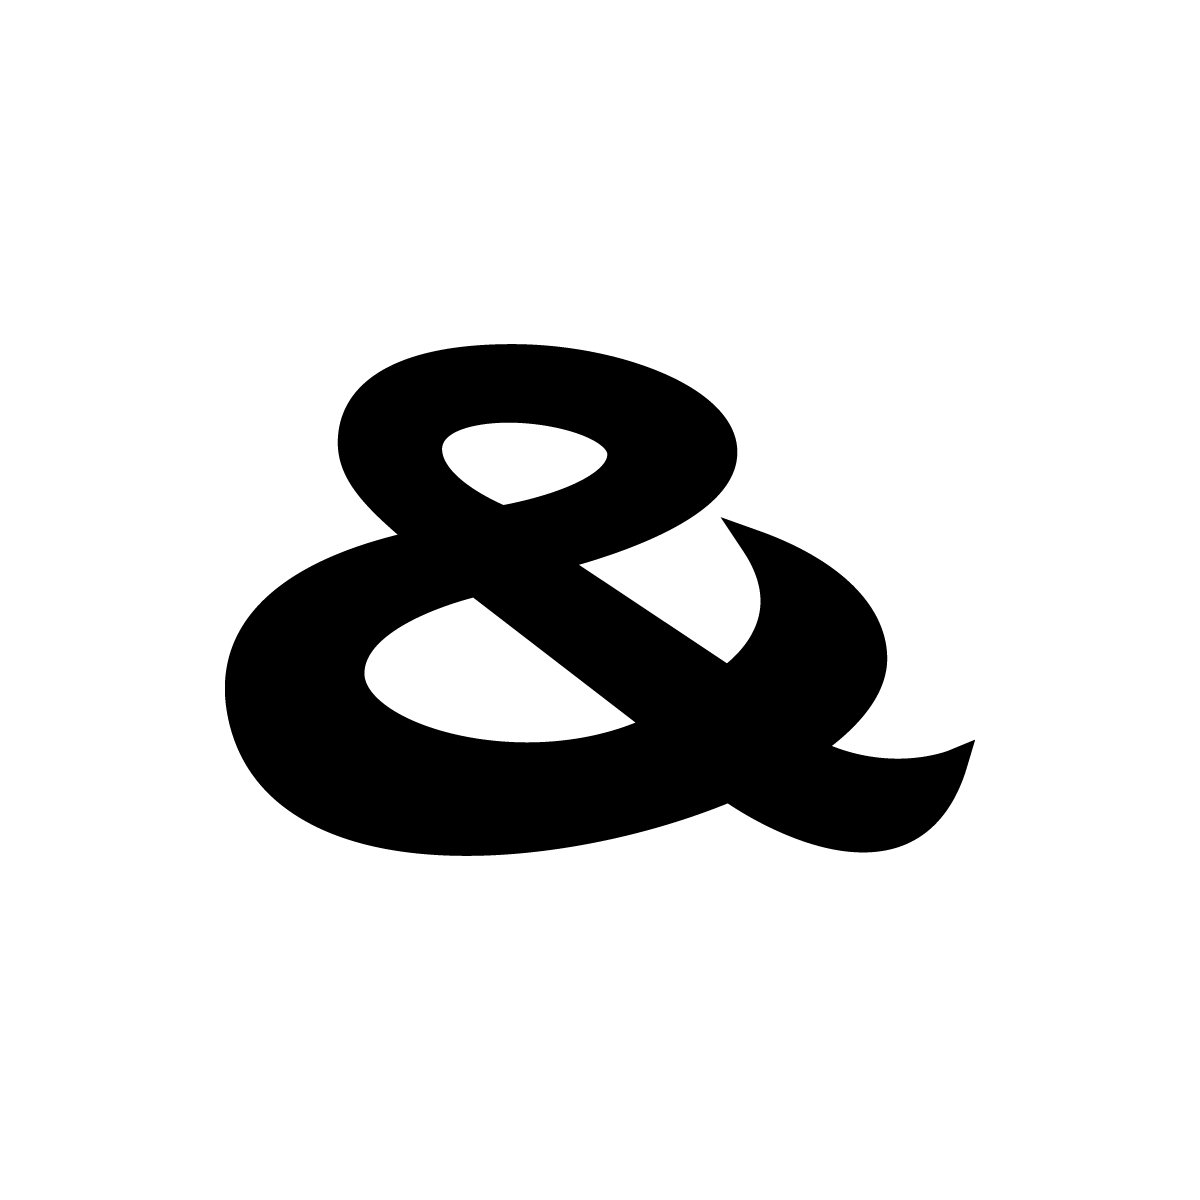 HD_Ampersand-123-22